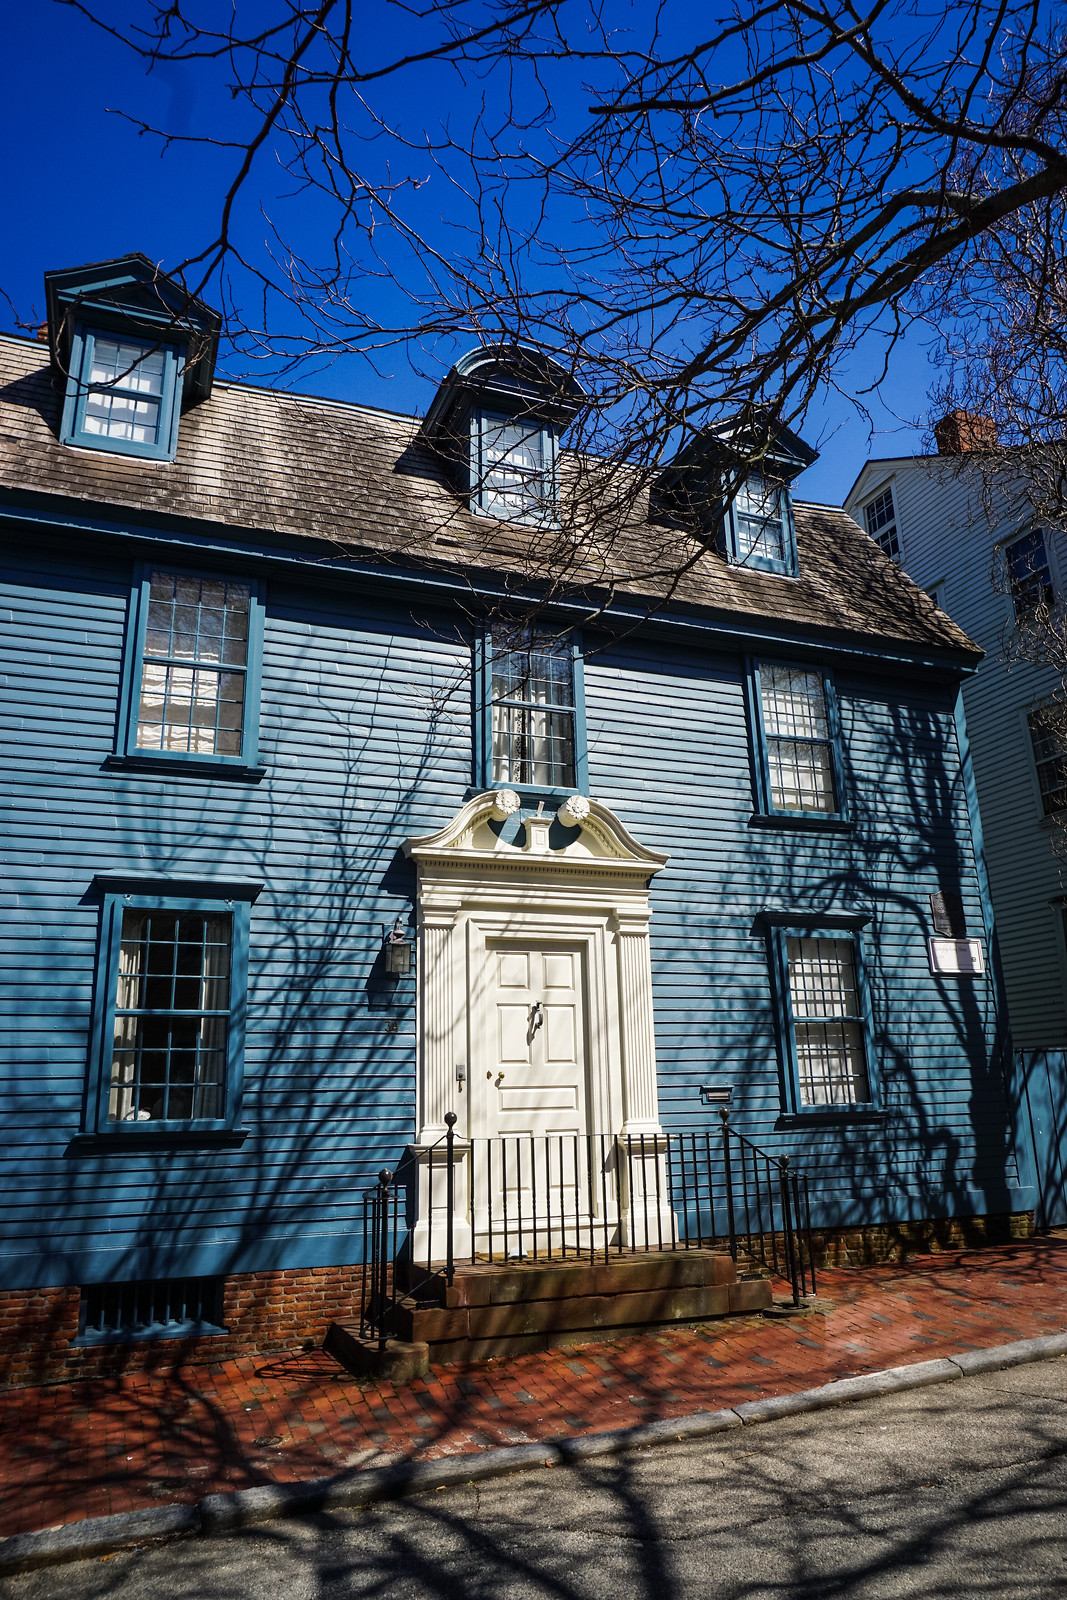 Blue Historical Home |  48 Hours in Newport Itinerary | A First Timer's Guide to 2 Days in Newport Rhode Island | What to do in Newport | Newport Travel Guide | Best Things to do in Newport | Best Places to Visit in Newport